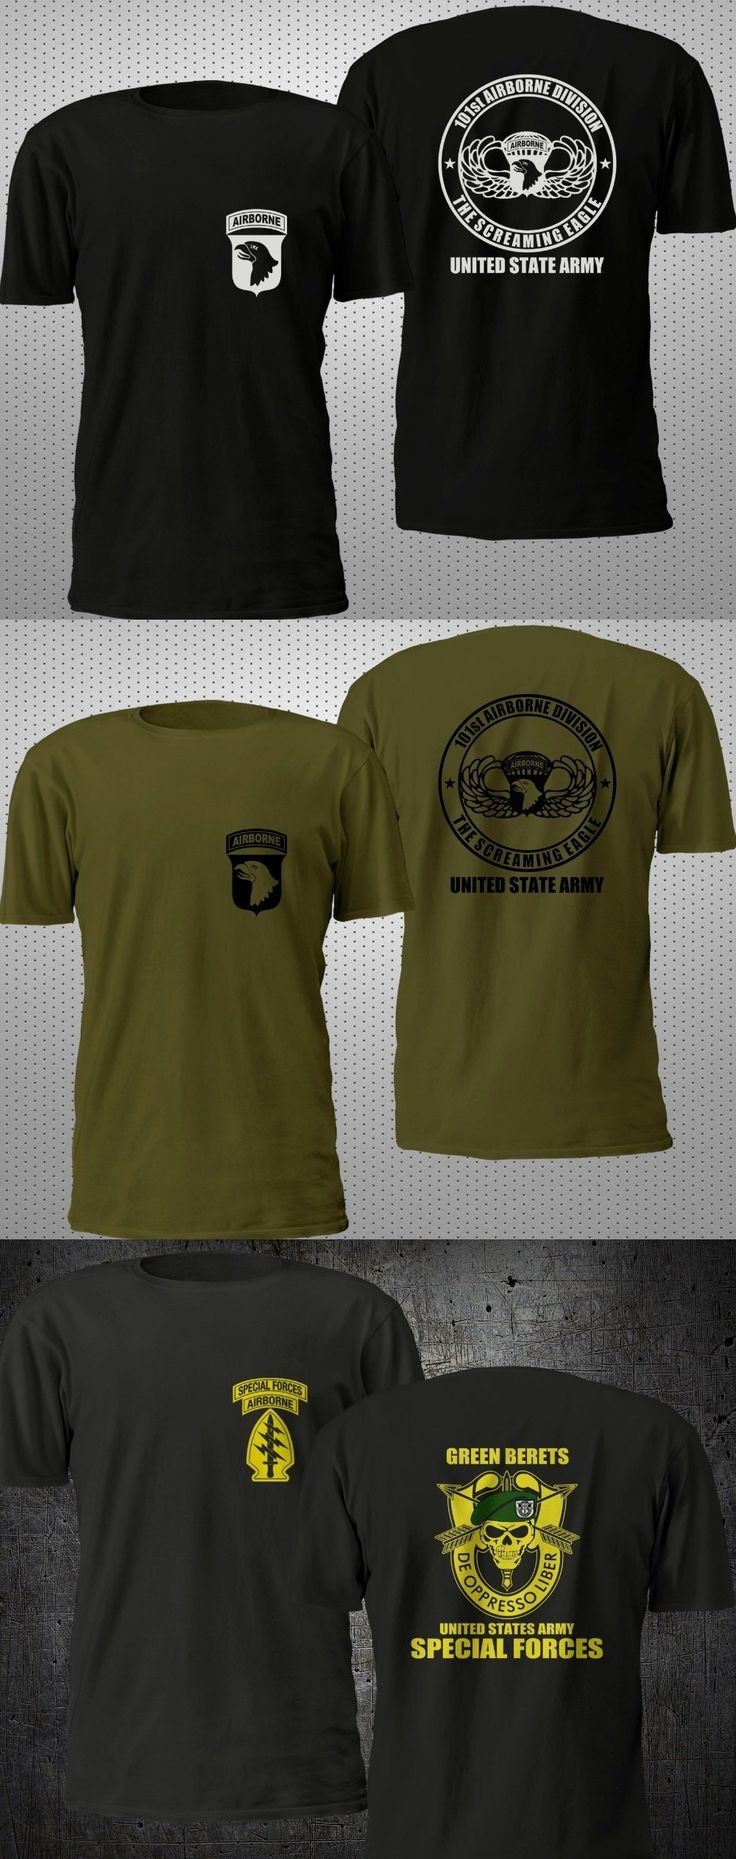 NEW US ARMY SNIPER SCHOOL MARINE SPECIAL FORCE AIRBORNE MILITARY T SHIRT COLLEGE SHIRT